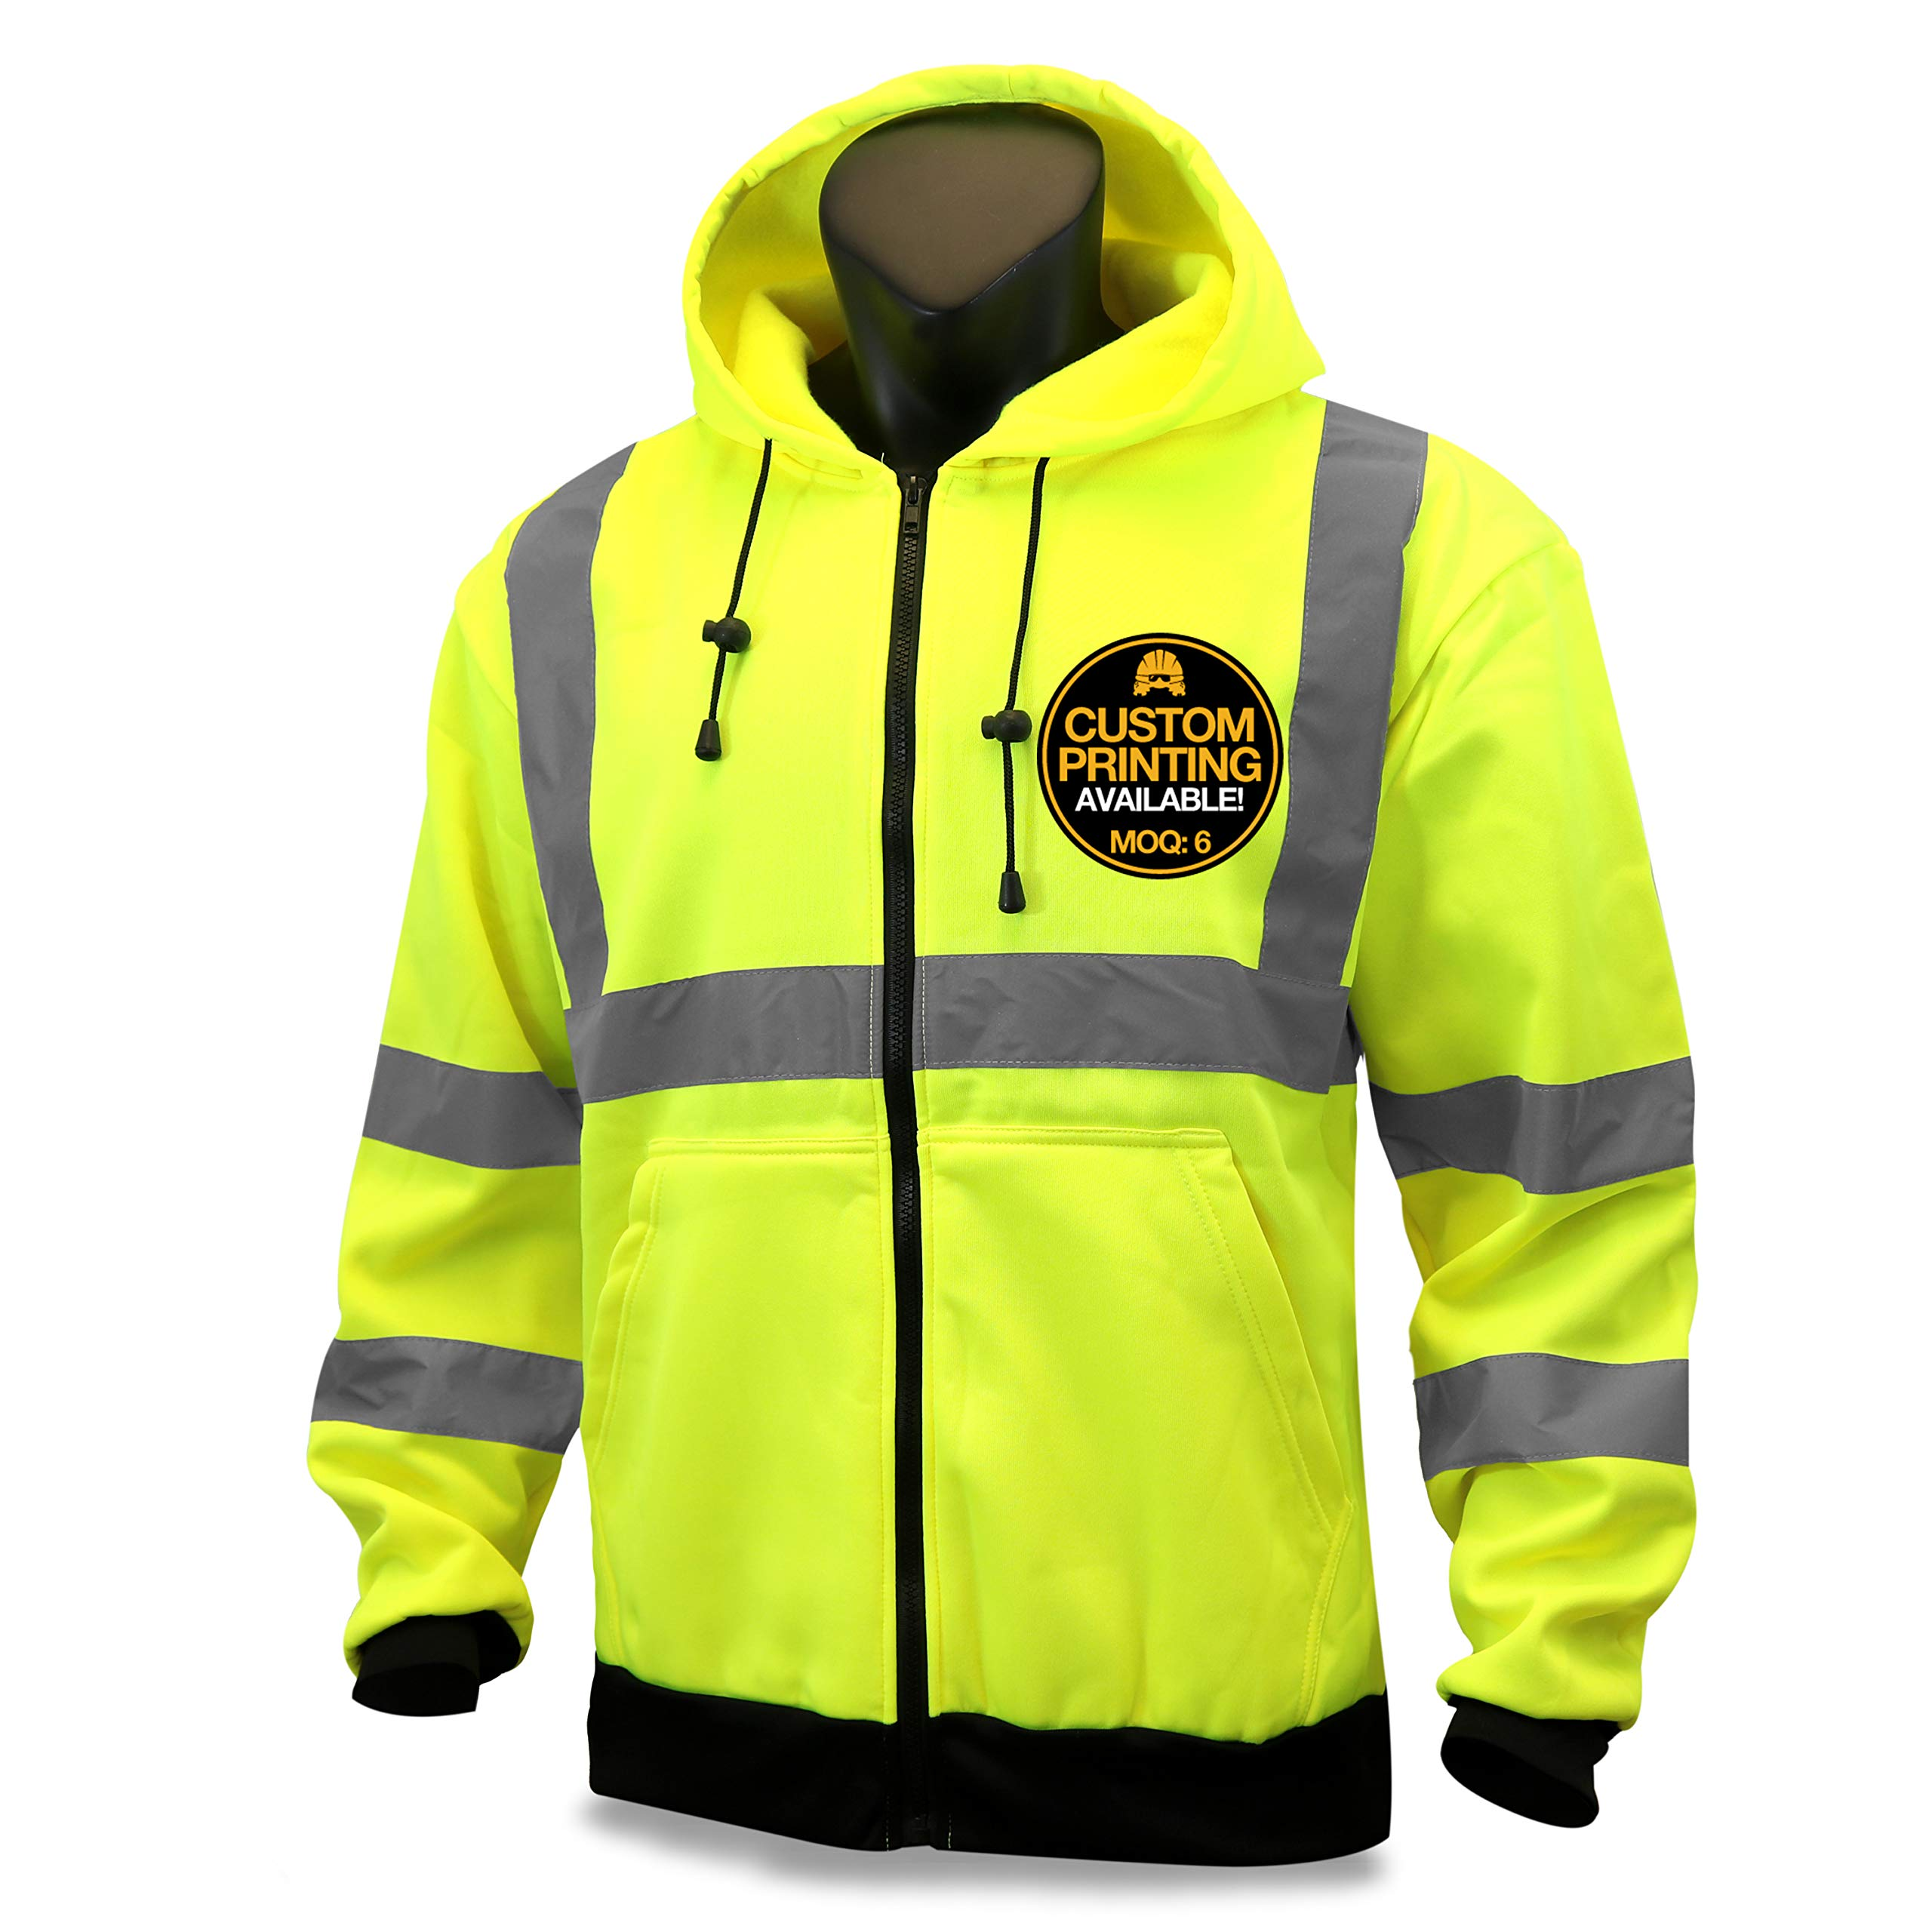 KwikSafety PATROL | Class 3 Fleece Hoodie | Premium Anti-Pill (No Fuzz Balls) Durable #5 Zipper Construction Work Wear | 360° Hi Vis Reflective ANSI Compliant OSHA Approved Safety Jacket | Large